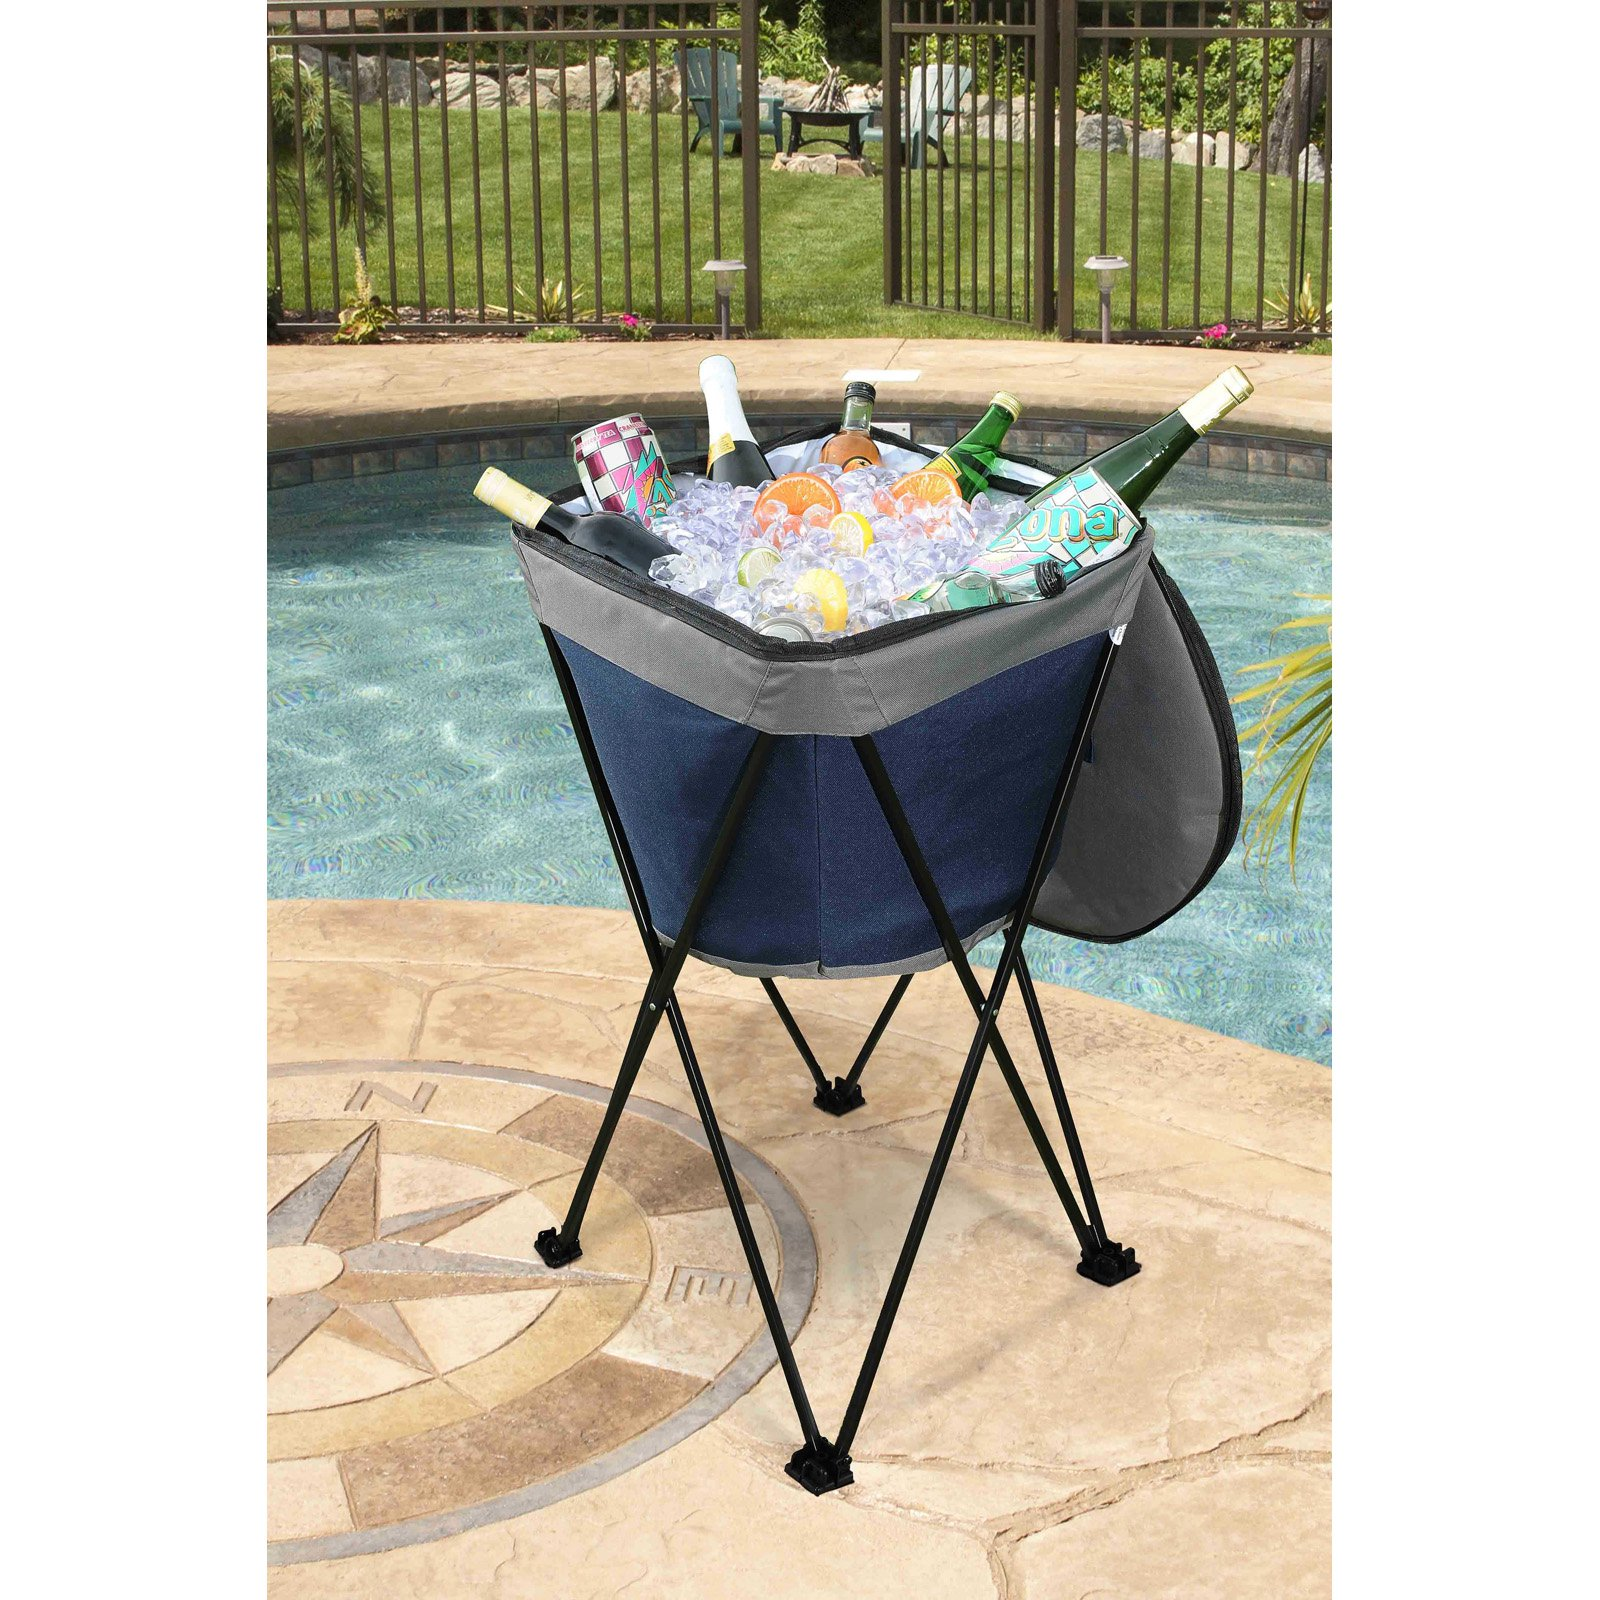 Sunjoy Carla Portable Ice Tub